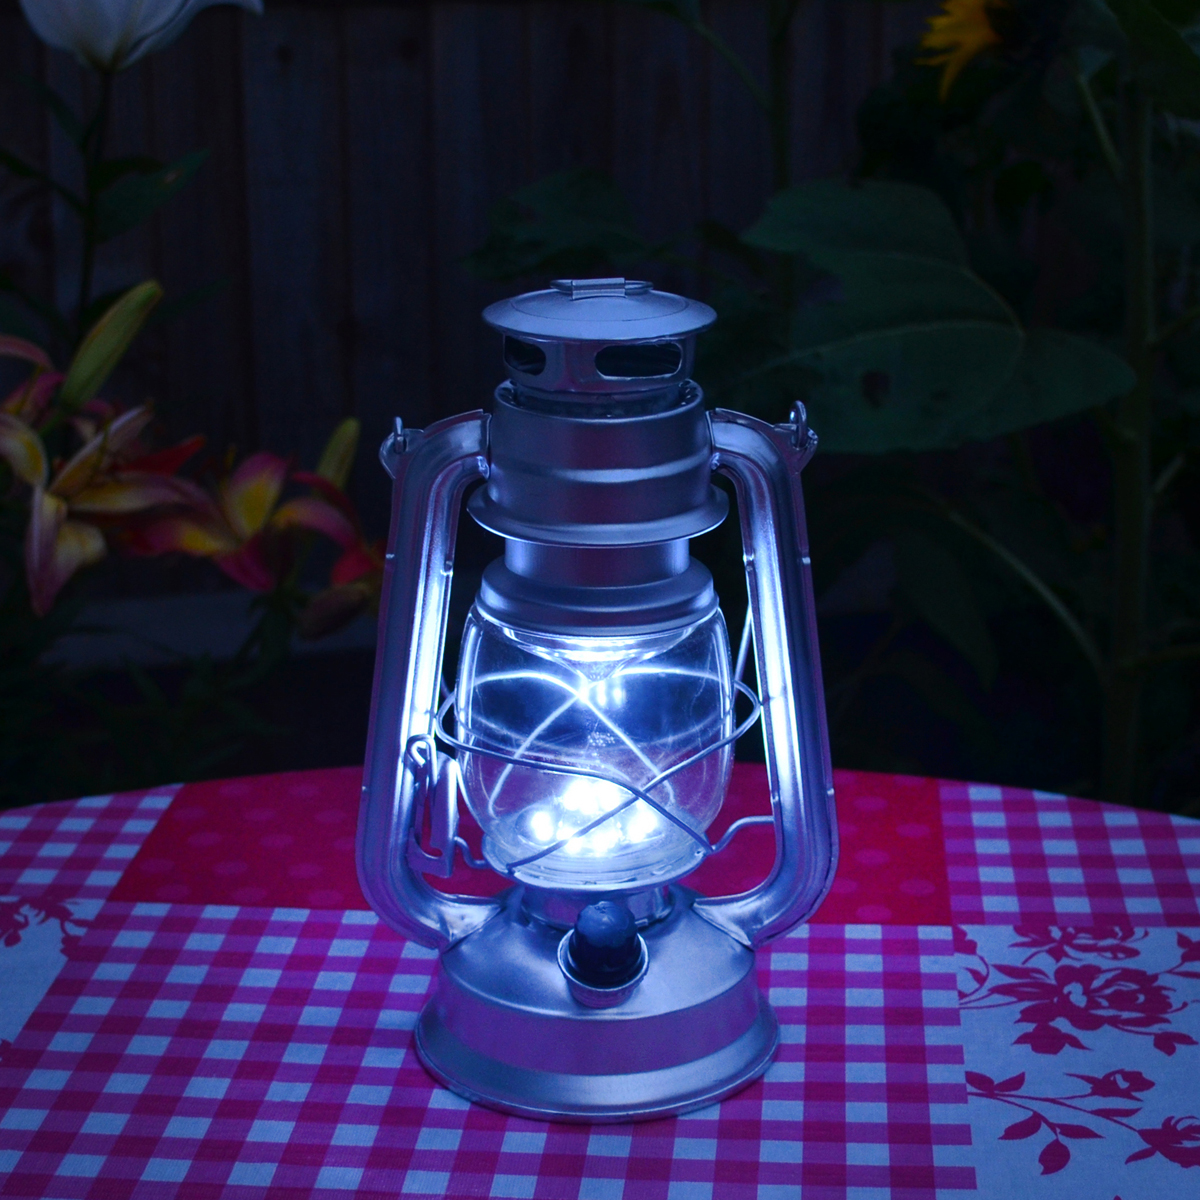 Amtech S8010 15 LED Hurricane Lamp